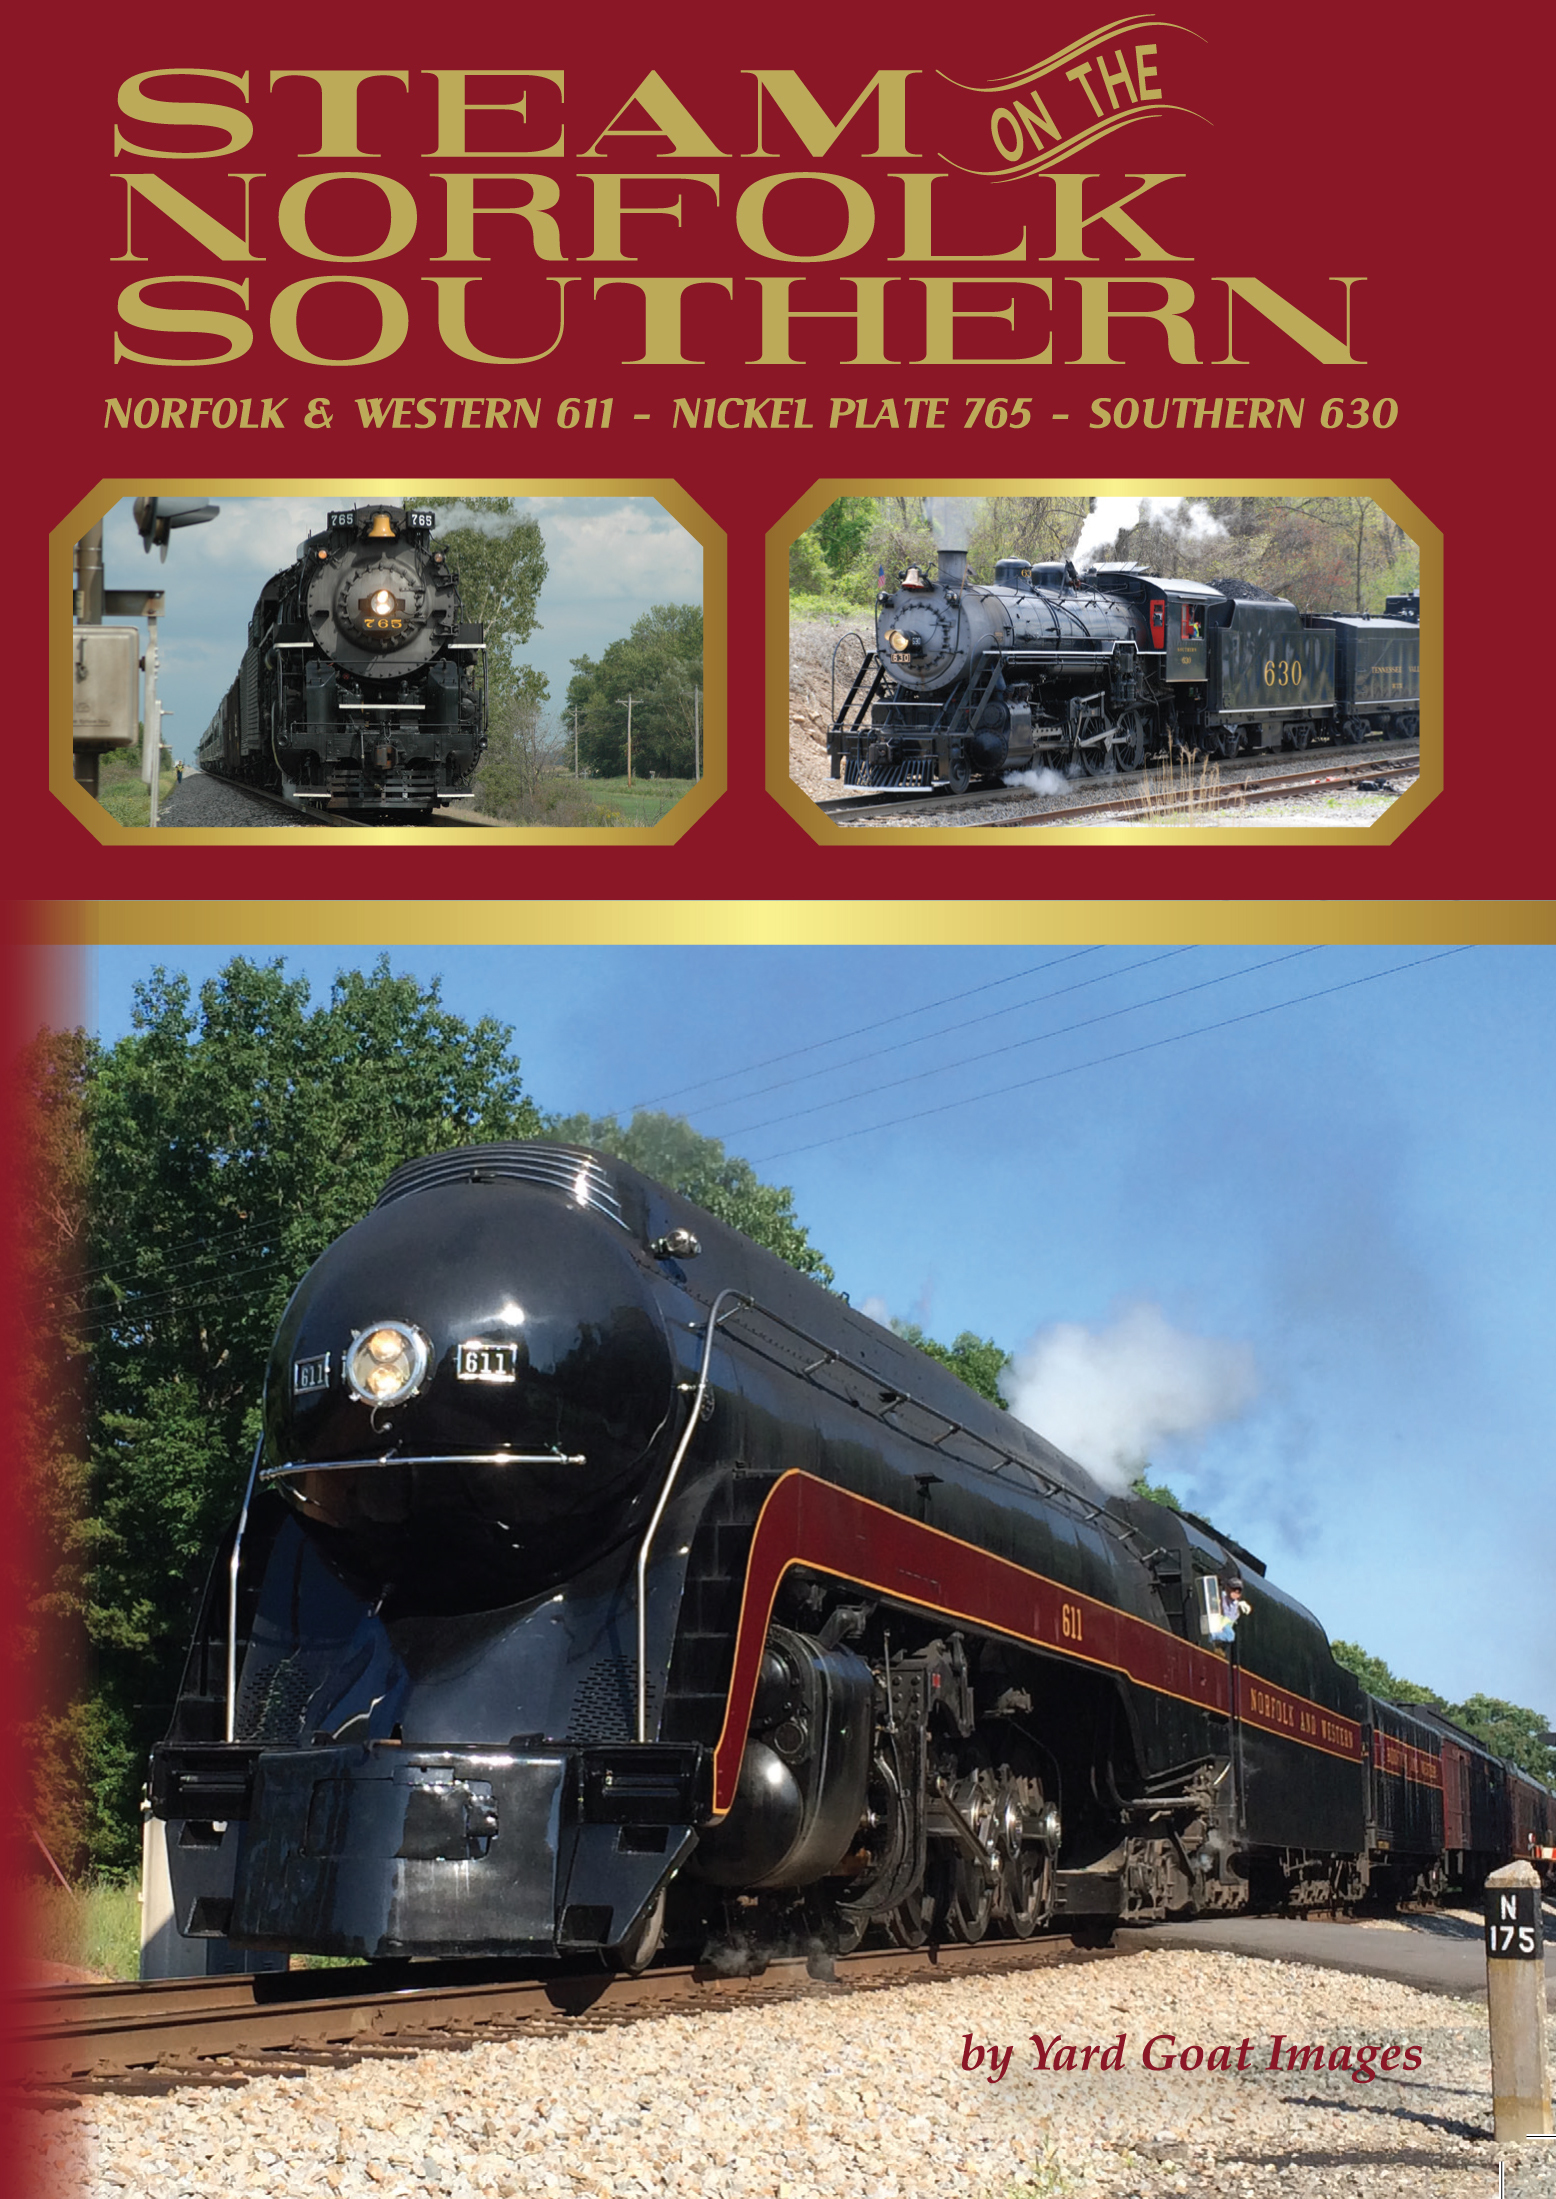 Steam on the Norfolk Southern: Norfolk & Western 611 - Nickel Plate 765 - Southern 630 1547